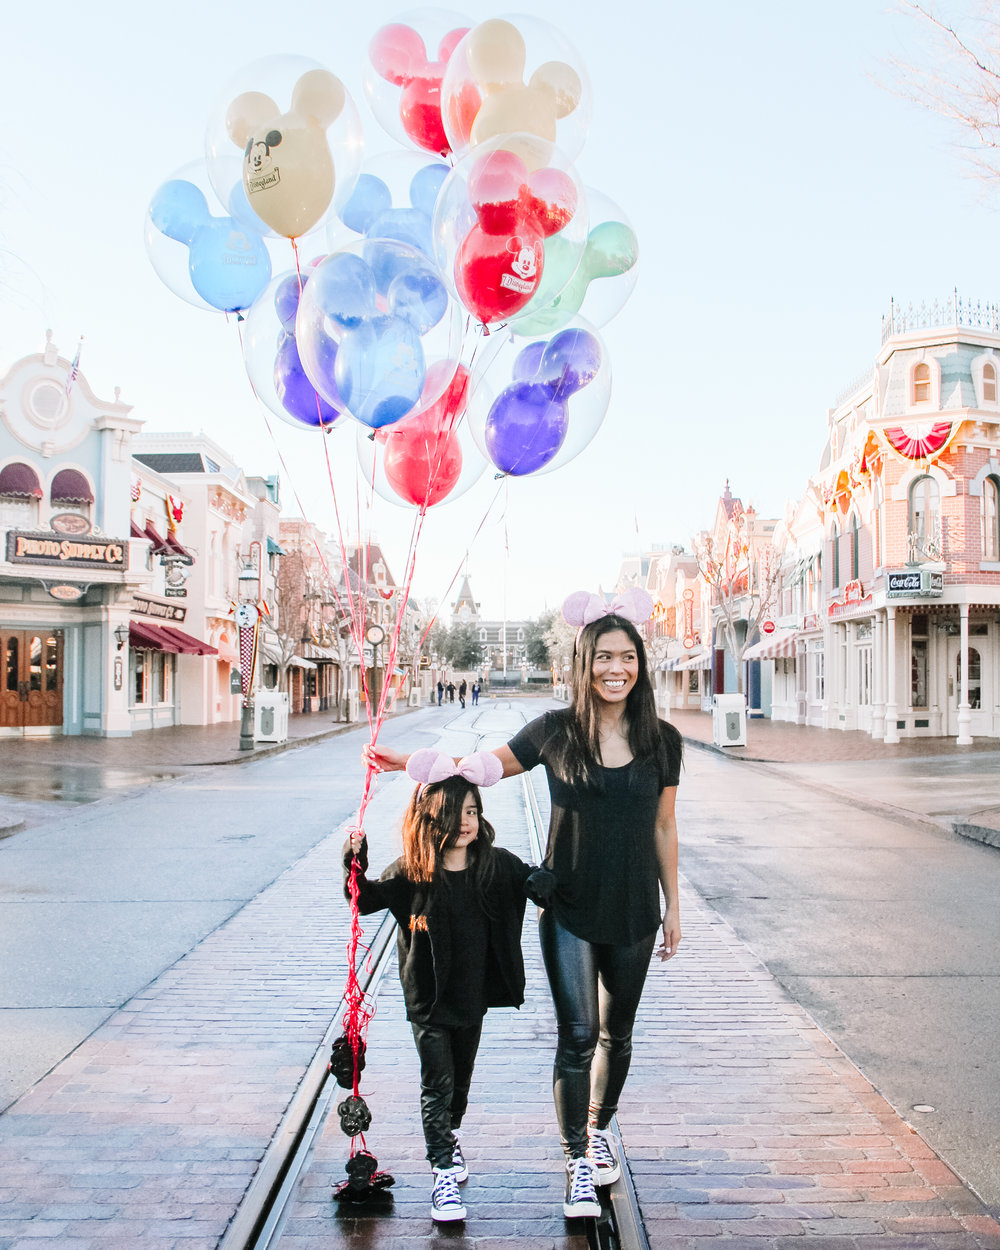 Harper had the time of her life at Disneyland!